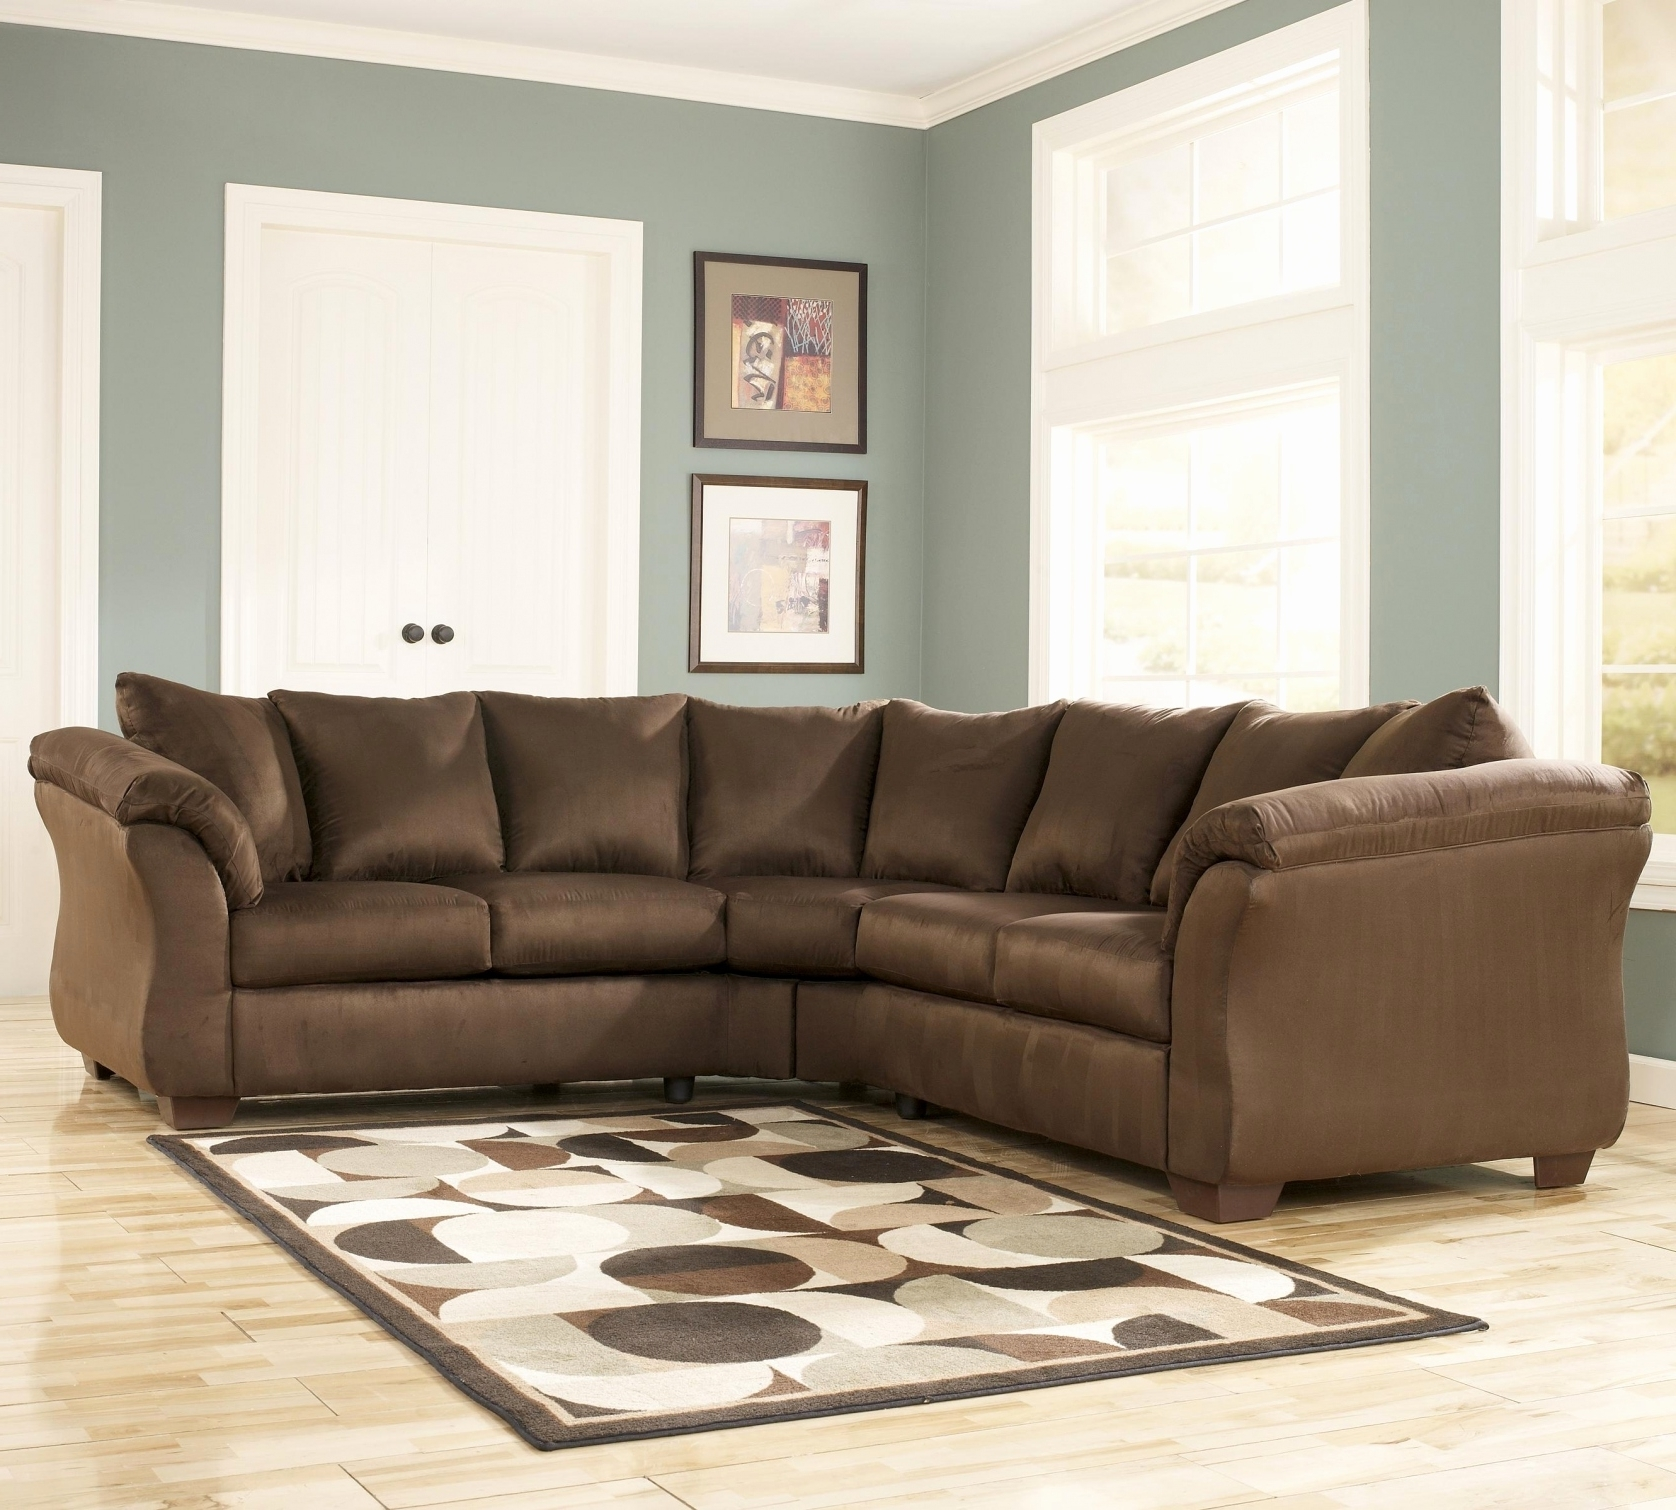 Sectional Sofas At Ashley With Preferred 39 Refined Gray Sectional Sofa Ashley Furniture Photos – Sectional (View 9 of 20)